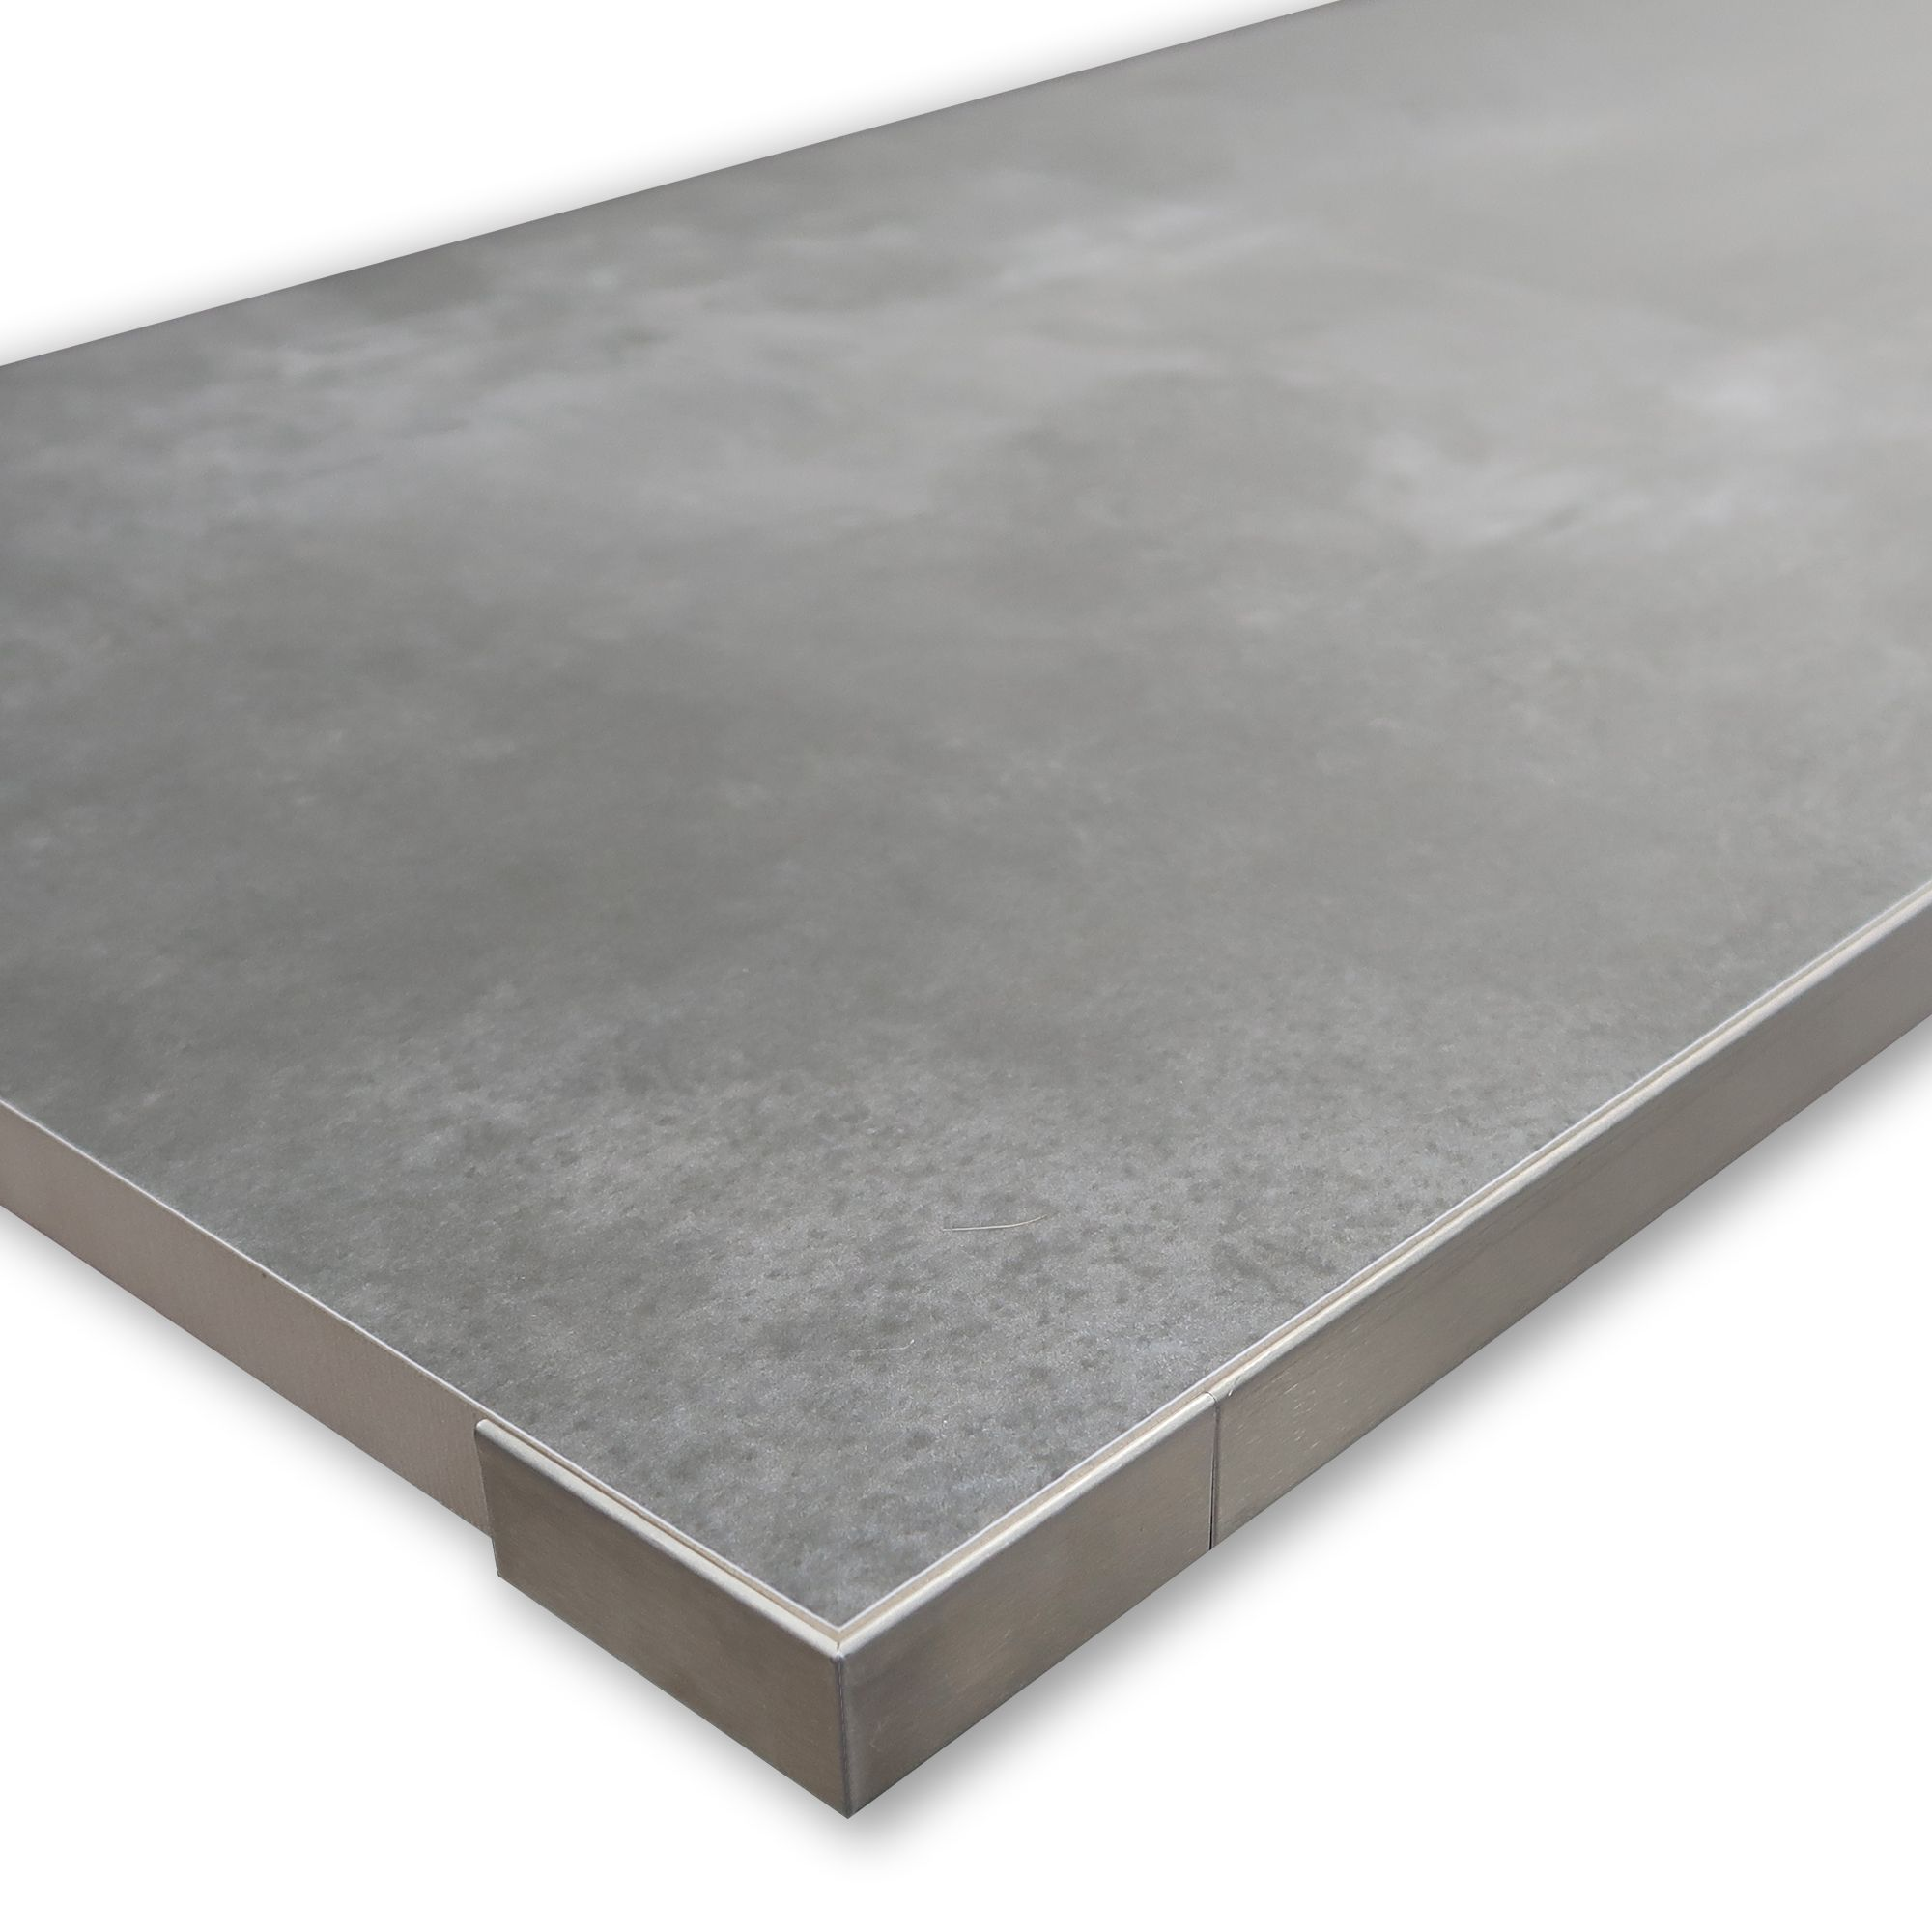 Porcelquick Stainless Steel Straight Edge External Tile Trim